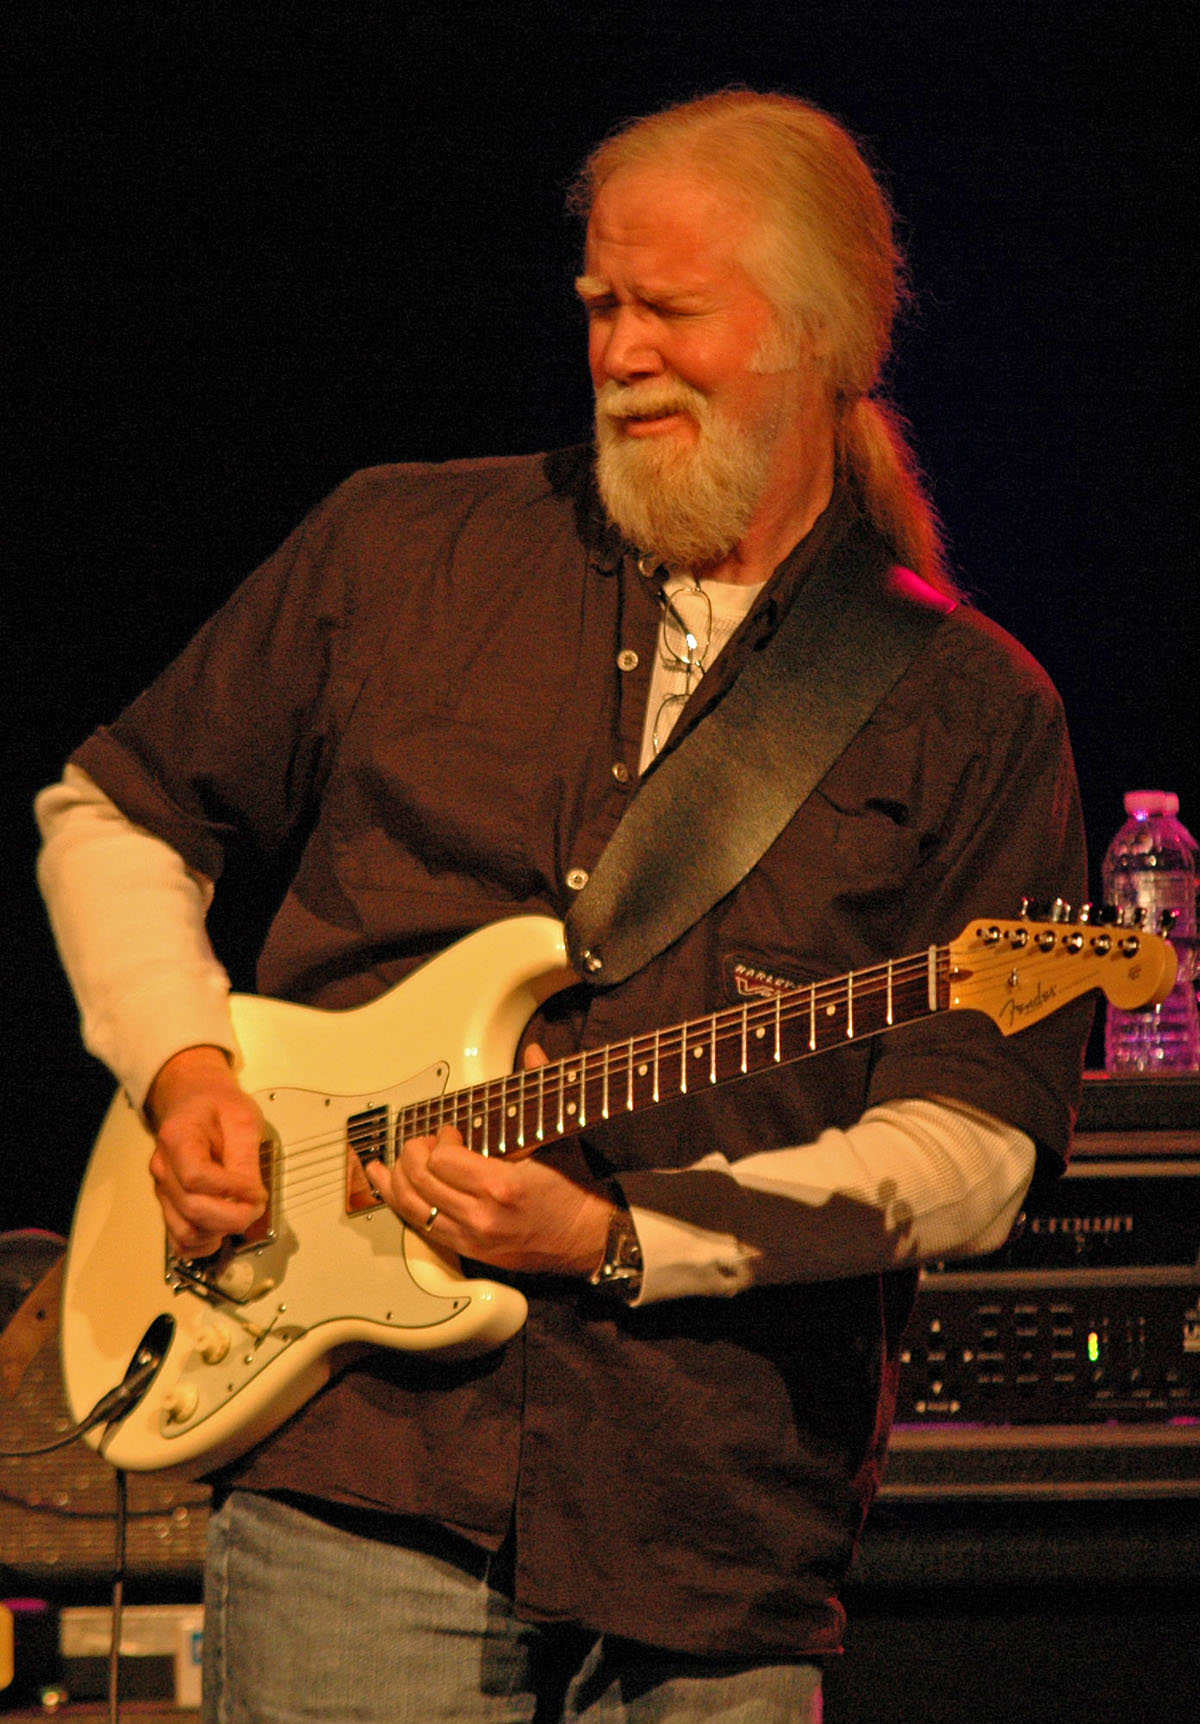 Jimmy Herring, Performing at the New Universe Music Festival 2010